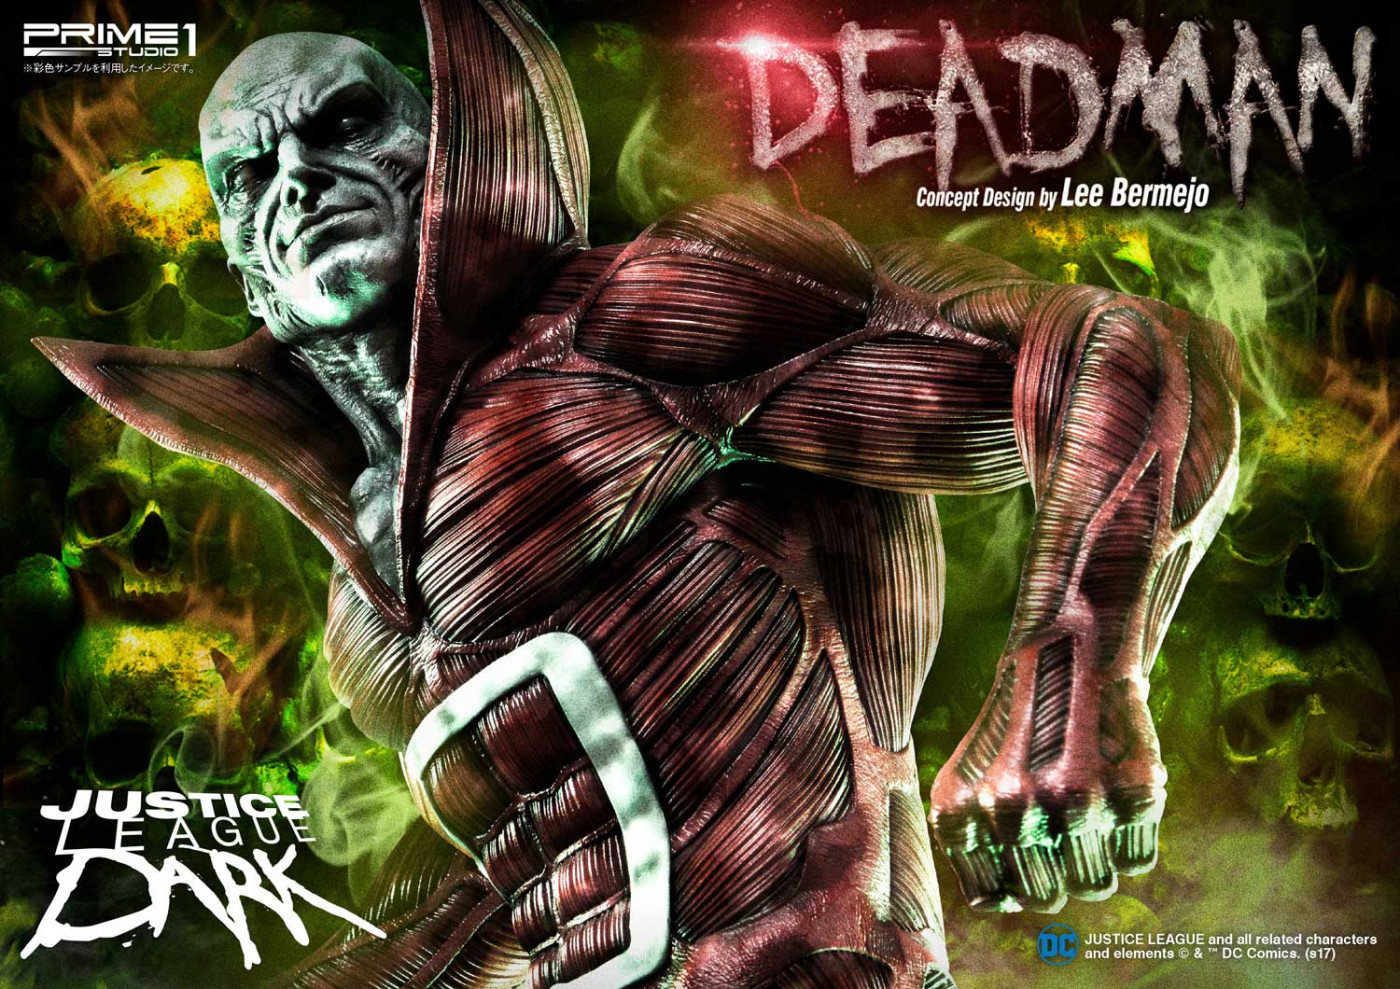 Museum Masterline Justice League Dark Dead Man (Concept Design by Lee Bermejo) EX Bonus Version